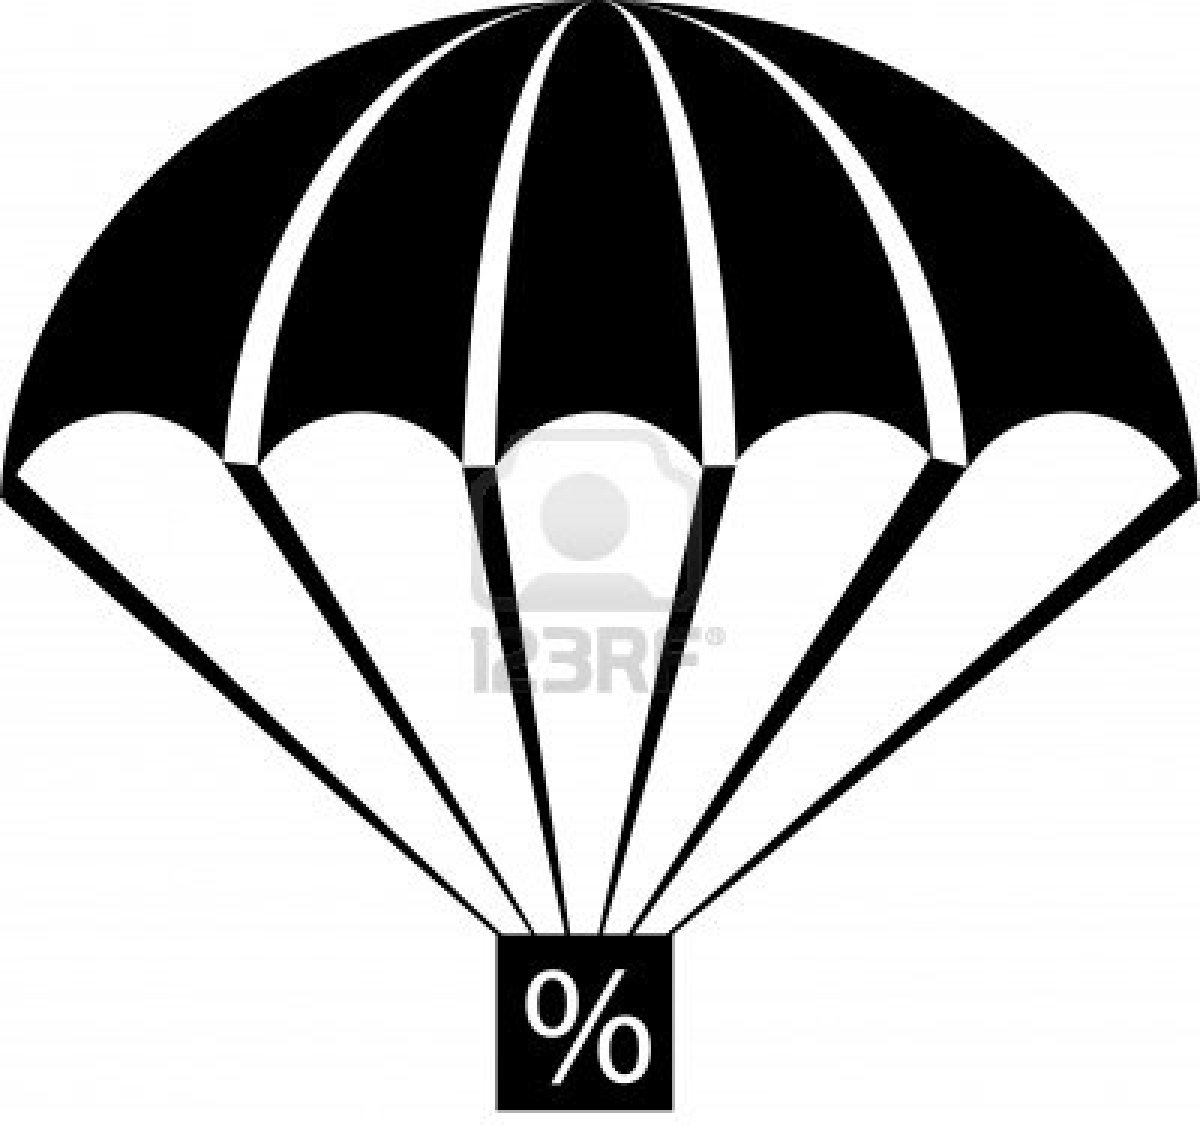 1200x1125 An Illustration With Parachute Percent Free Images